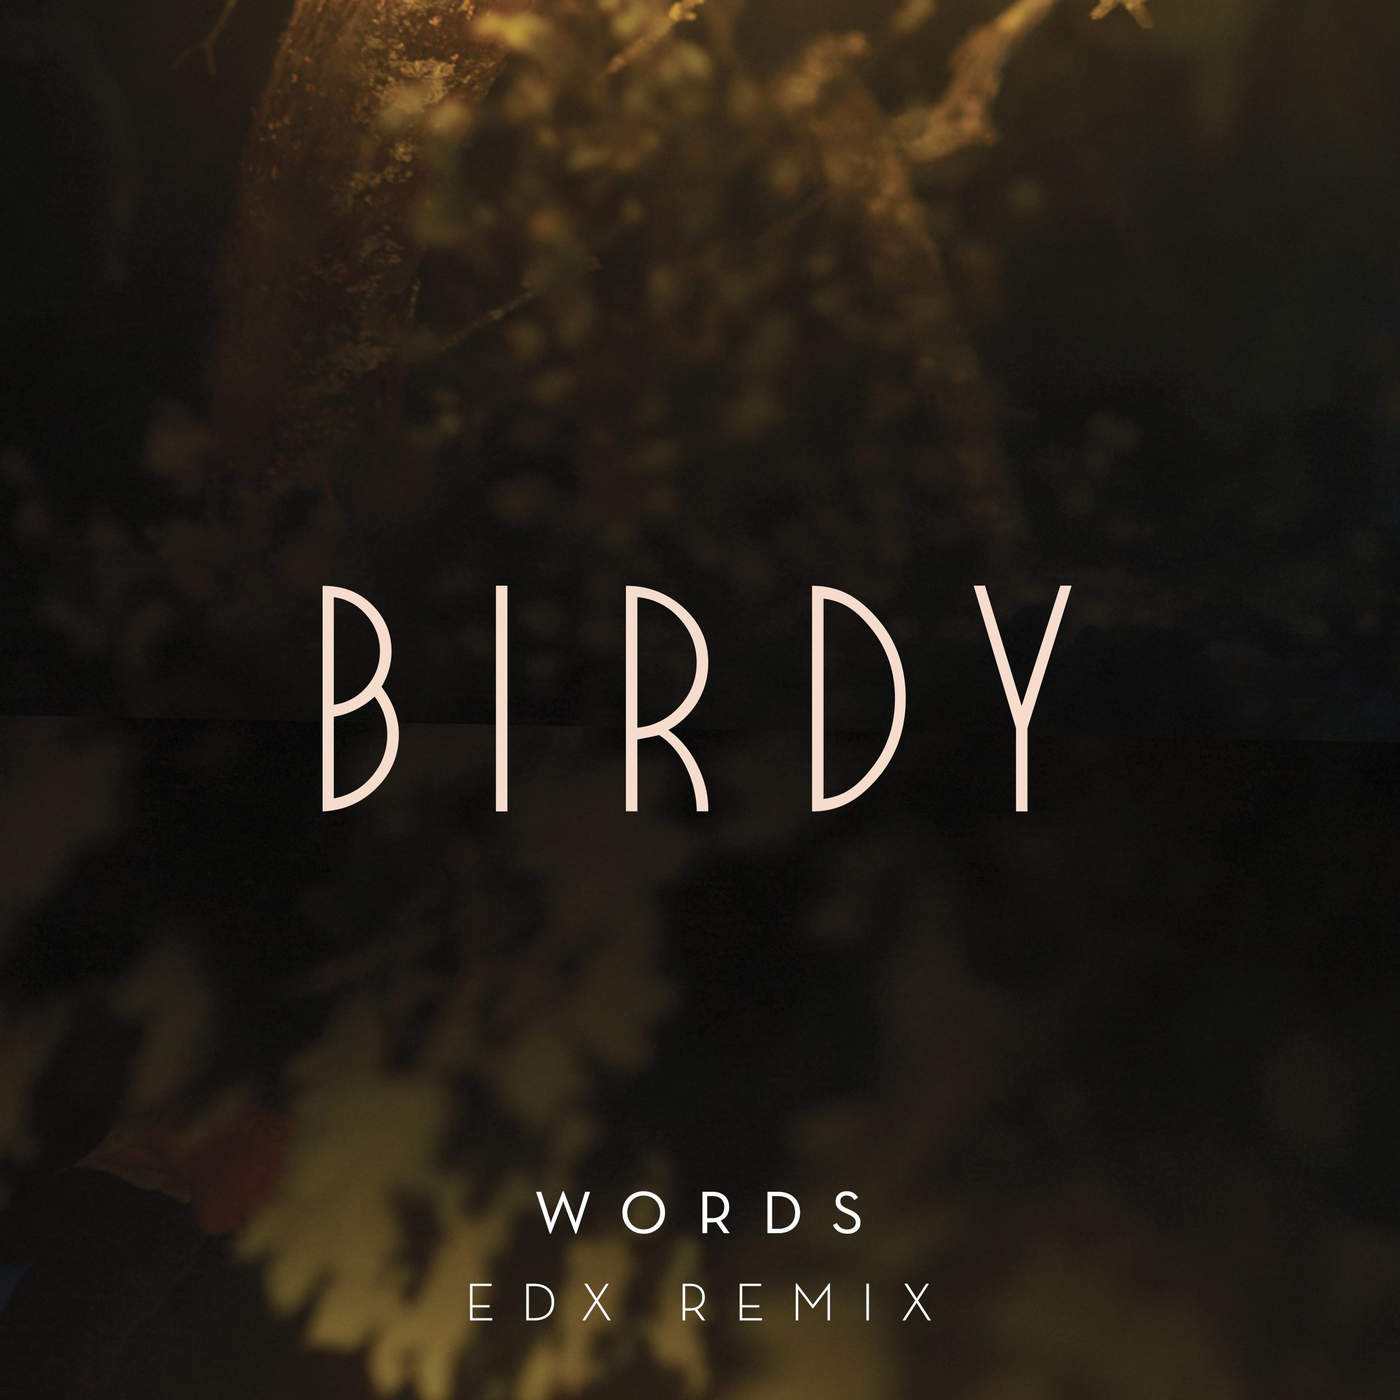 Birdy - Words (EDX Remix) - Single Cover